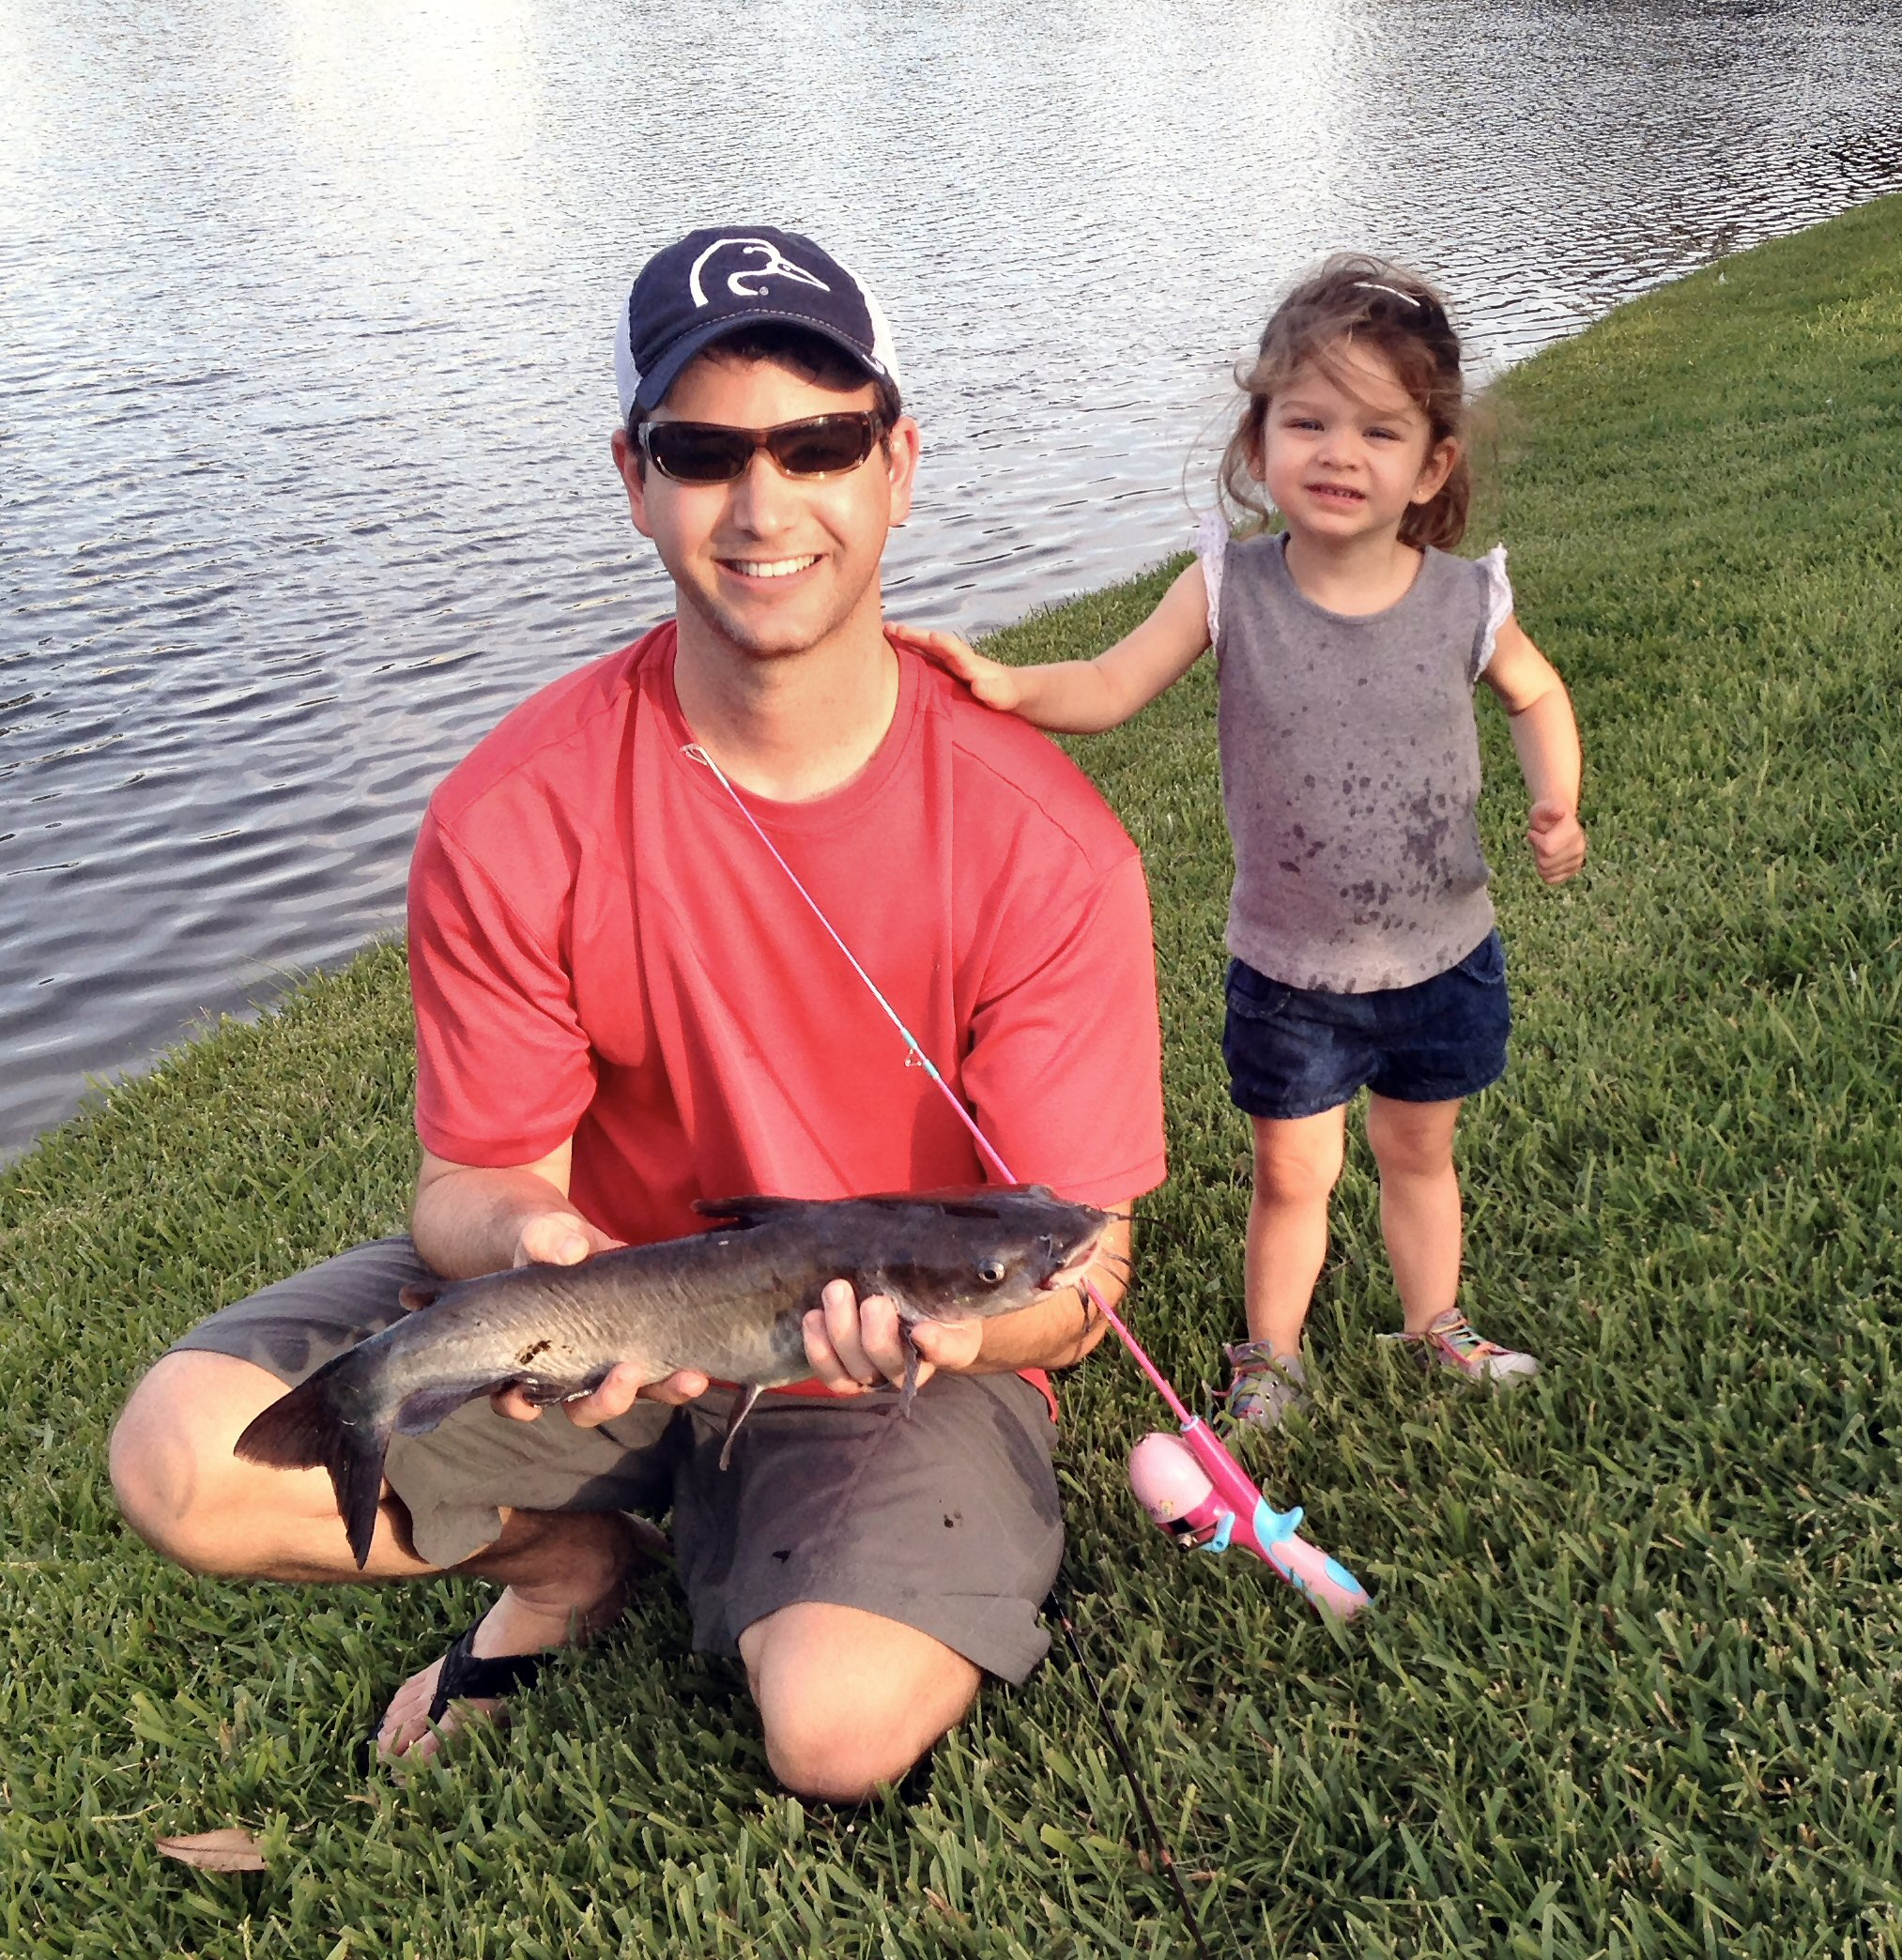 Kids And Fishing: Fun Comes First